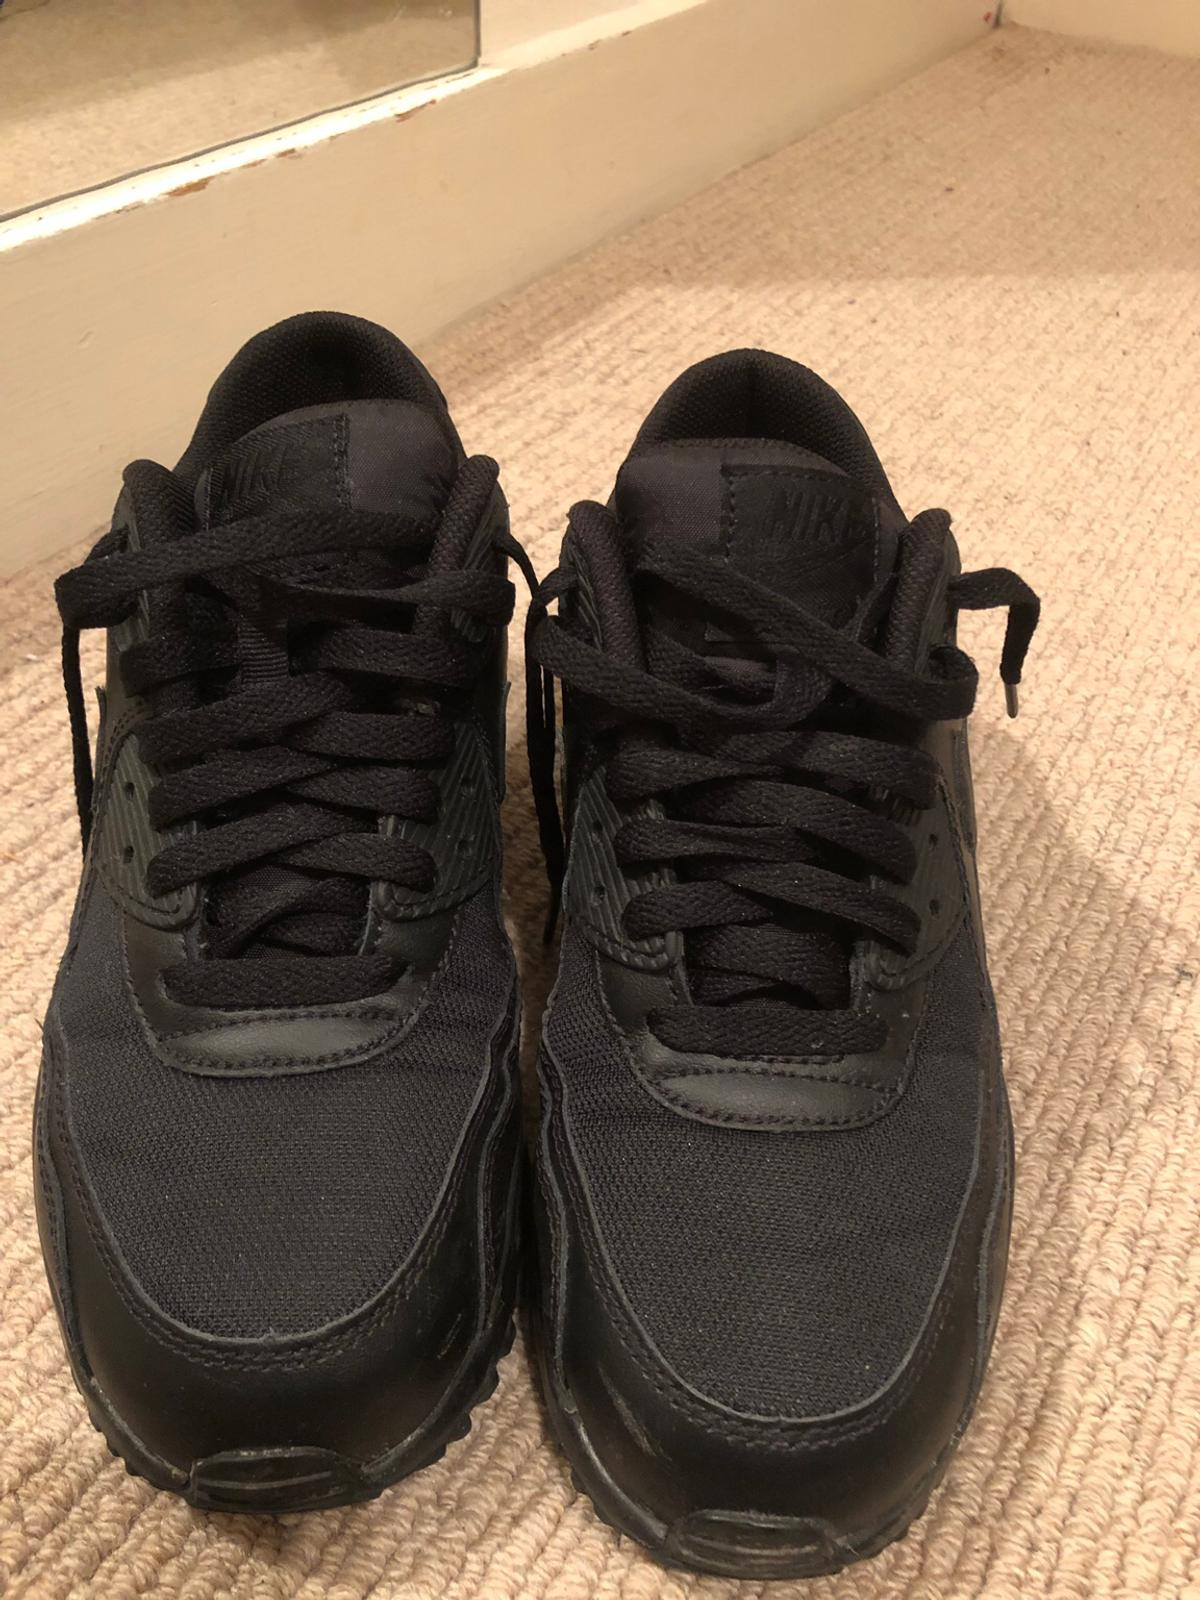 Very good condition. Barely worn. For collection / meet up only please Junior / woman's Size UK 5.5